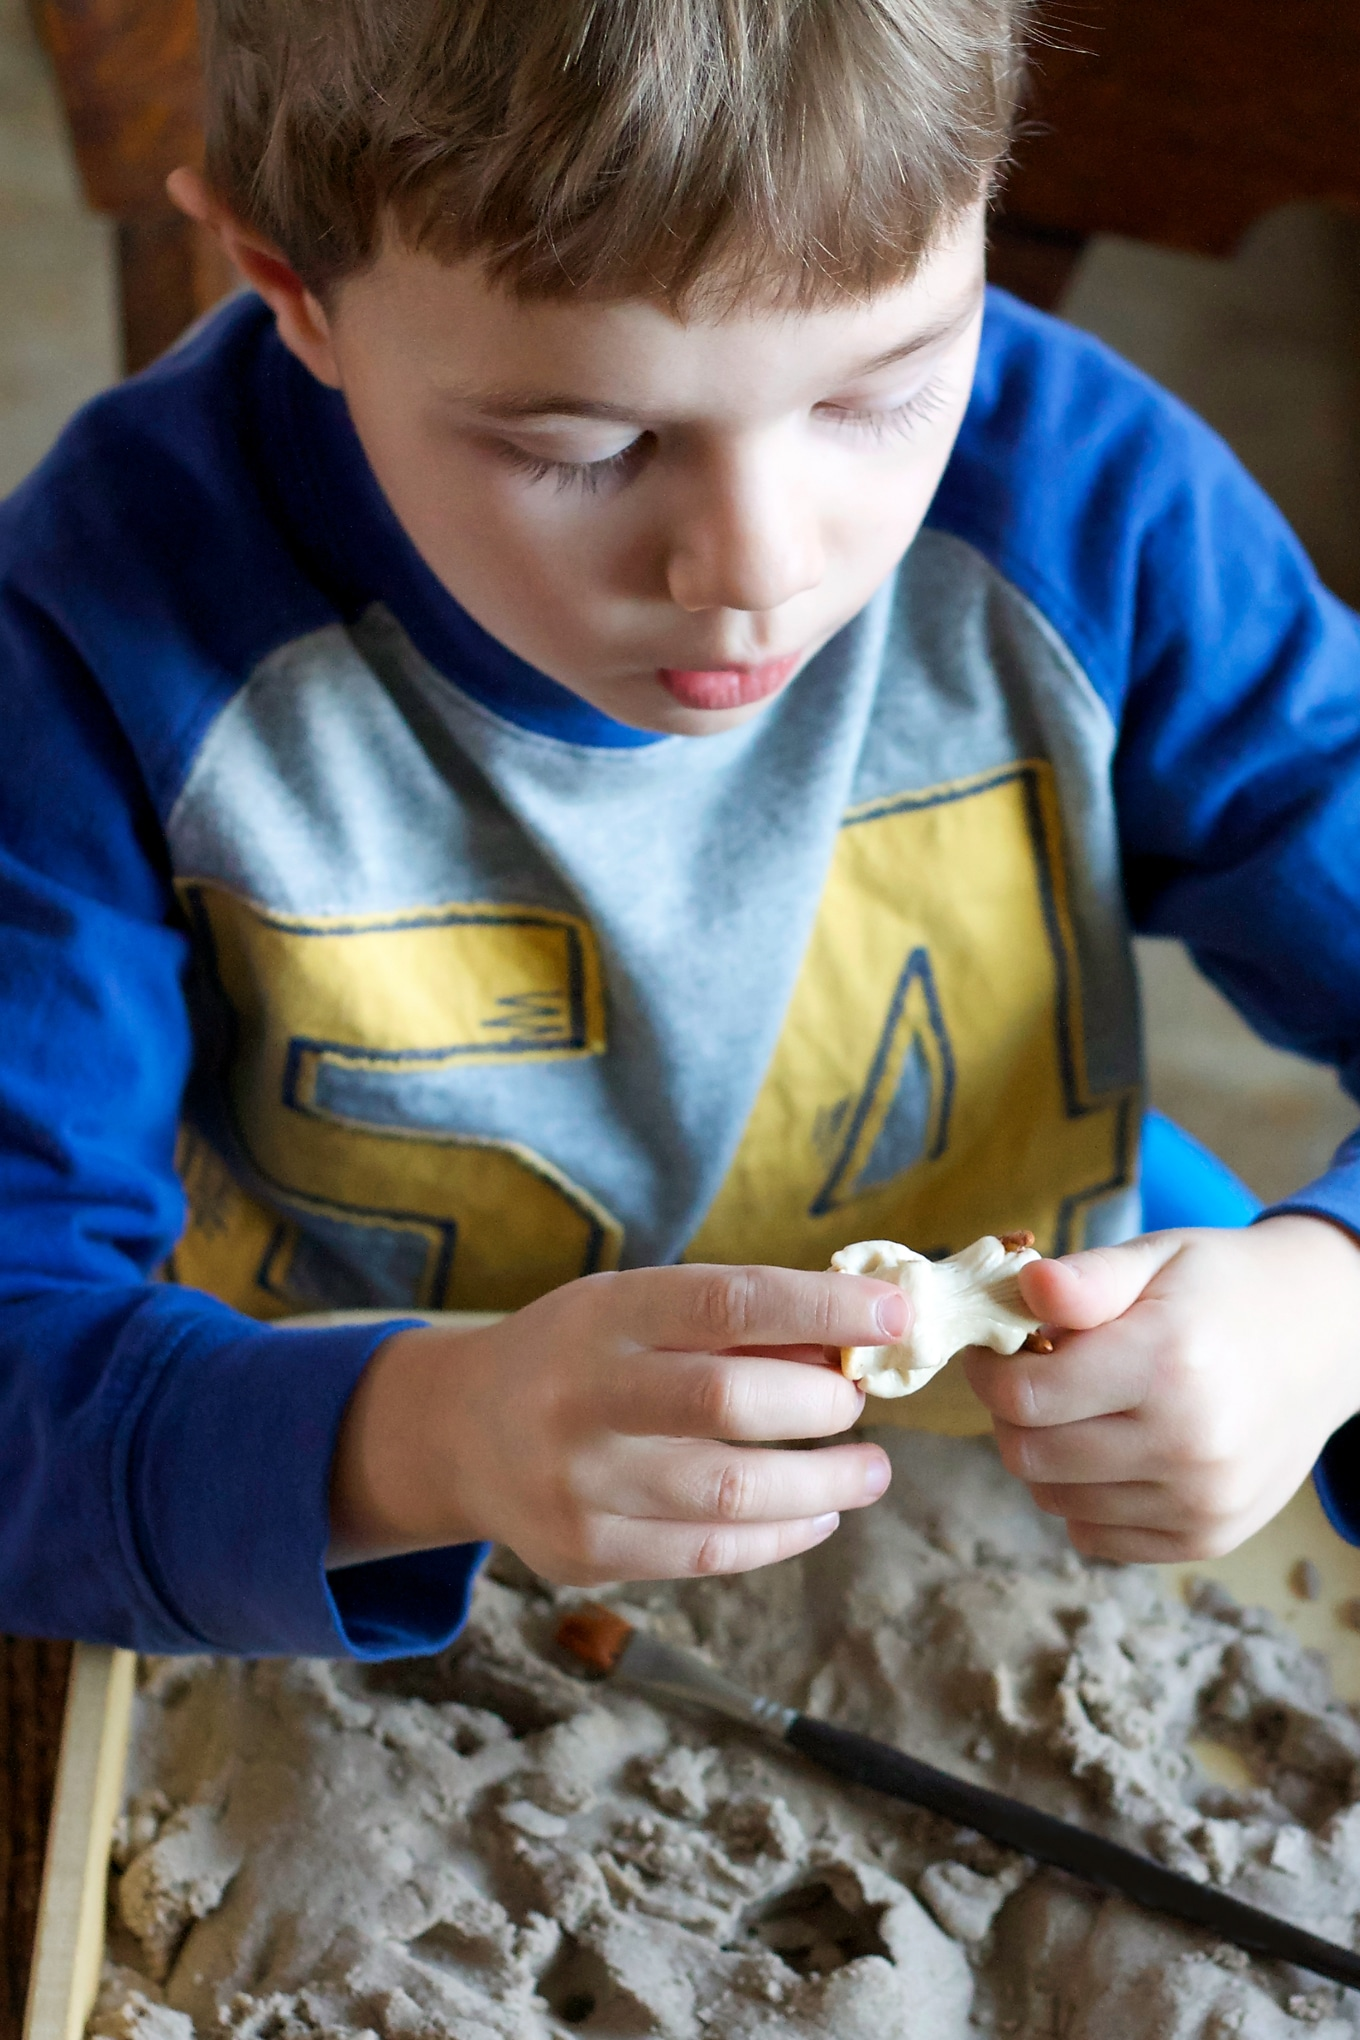 Preschooler Digging for Toy Dinosaur Skeletons